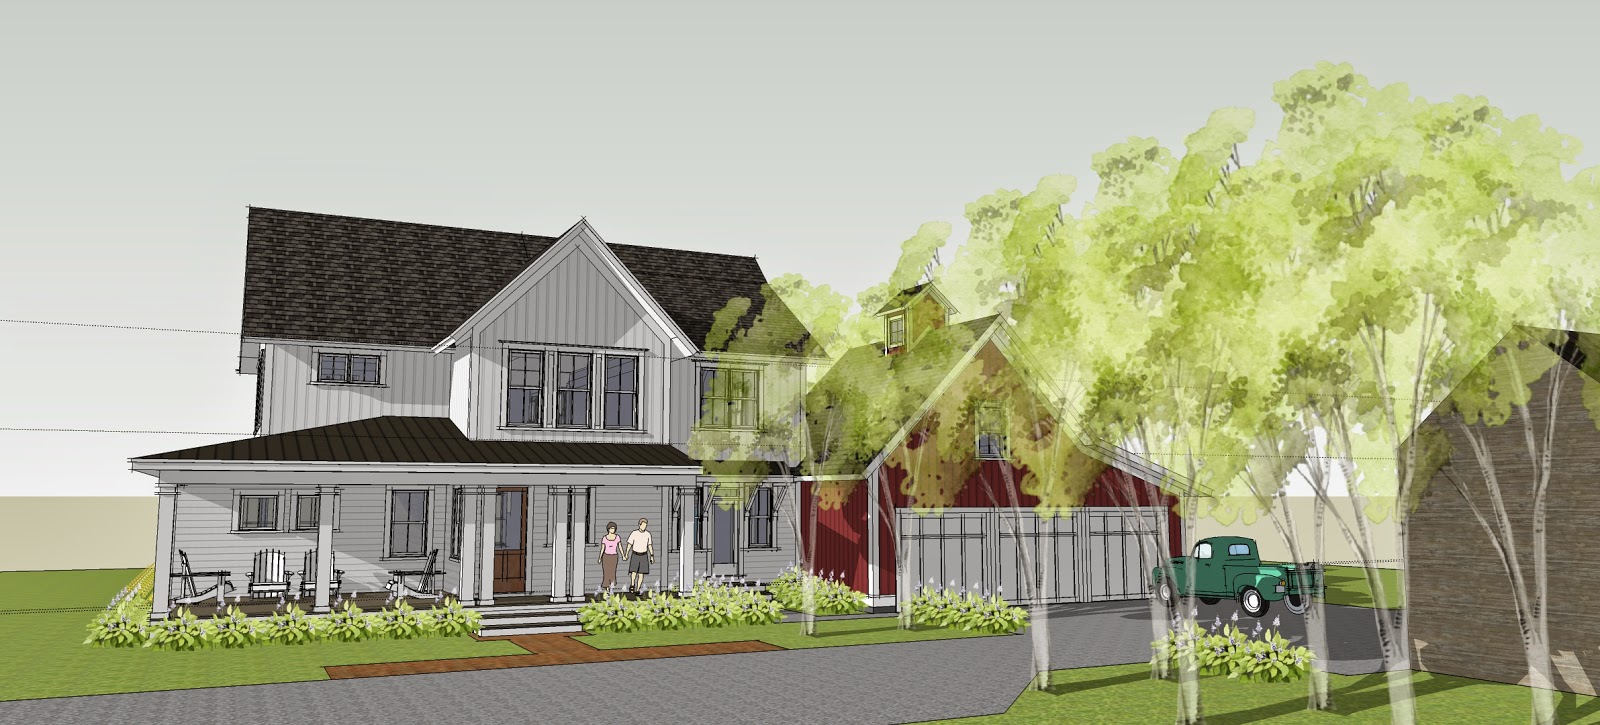 Simply elegant home designs blog new modern farmhouse by for Architectural designs farmhouse